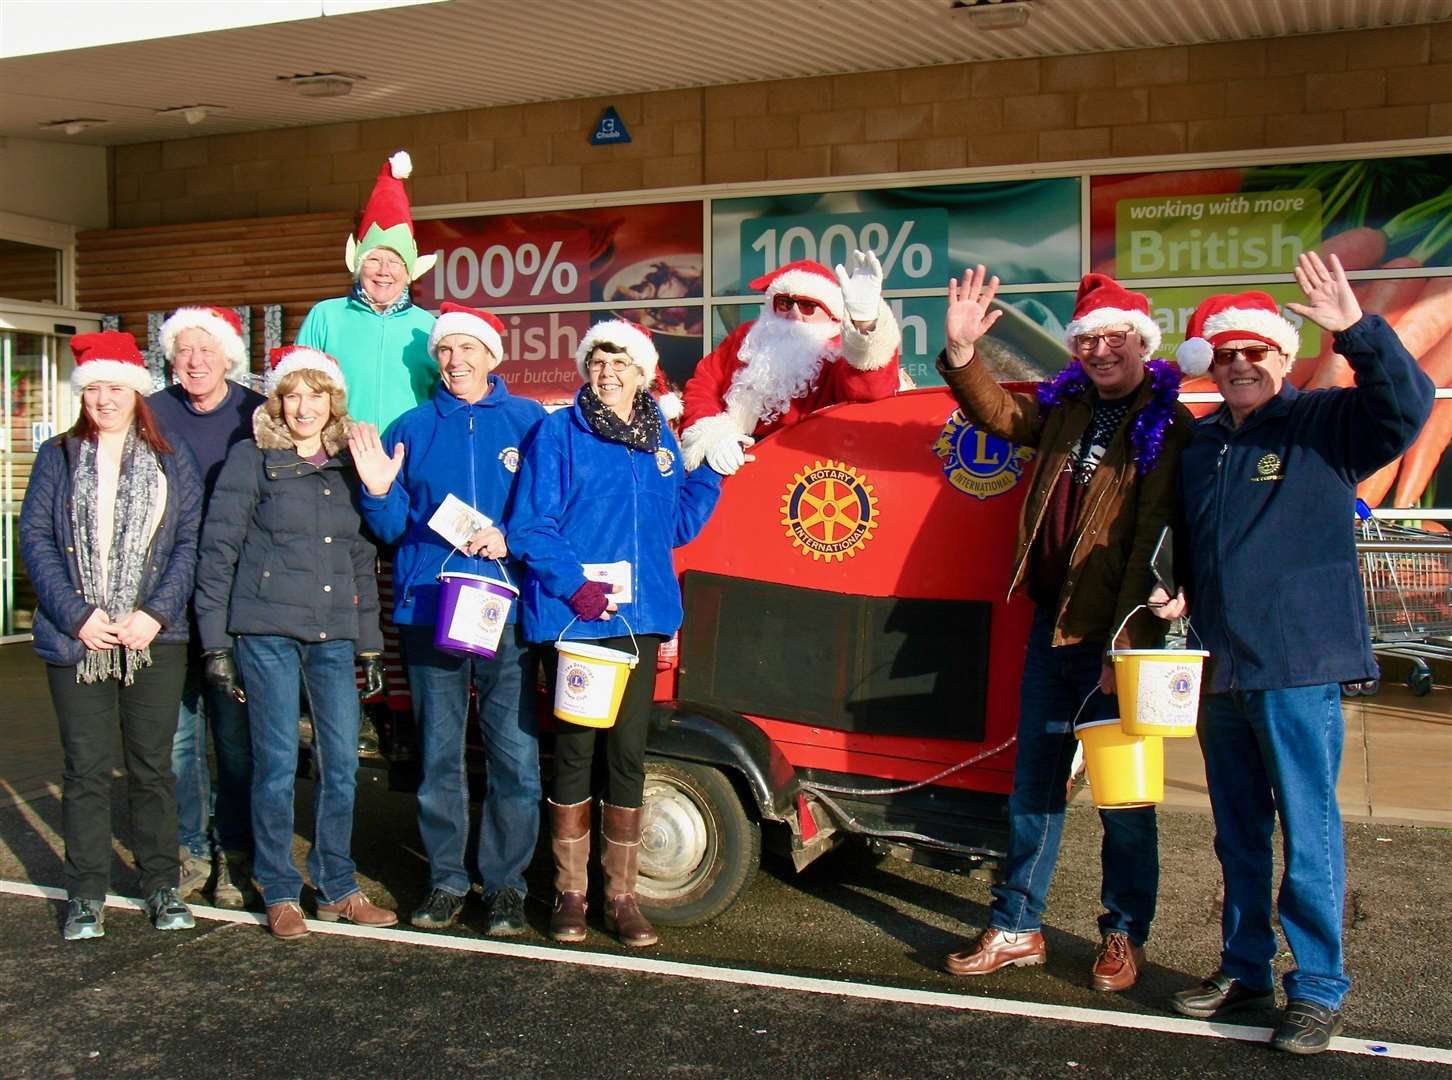 Members of Deepings Lions and the Rotary Club of the Deepings with the Santa sleigh outside Market Deeping Tesco store. (6464565)